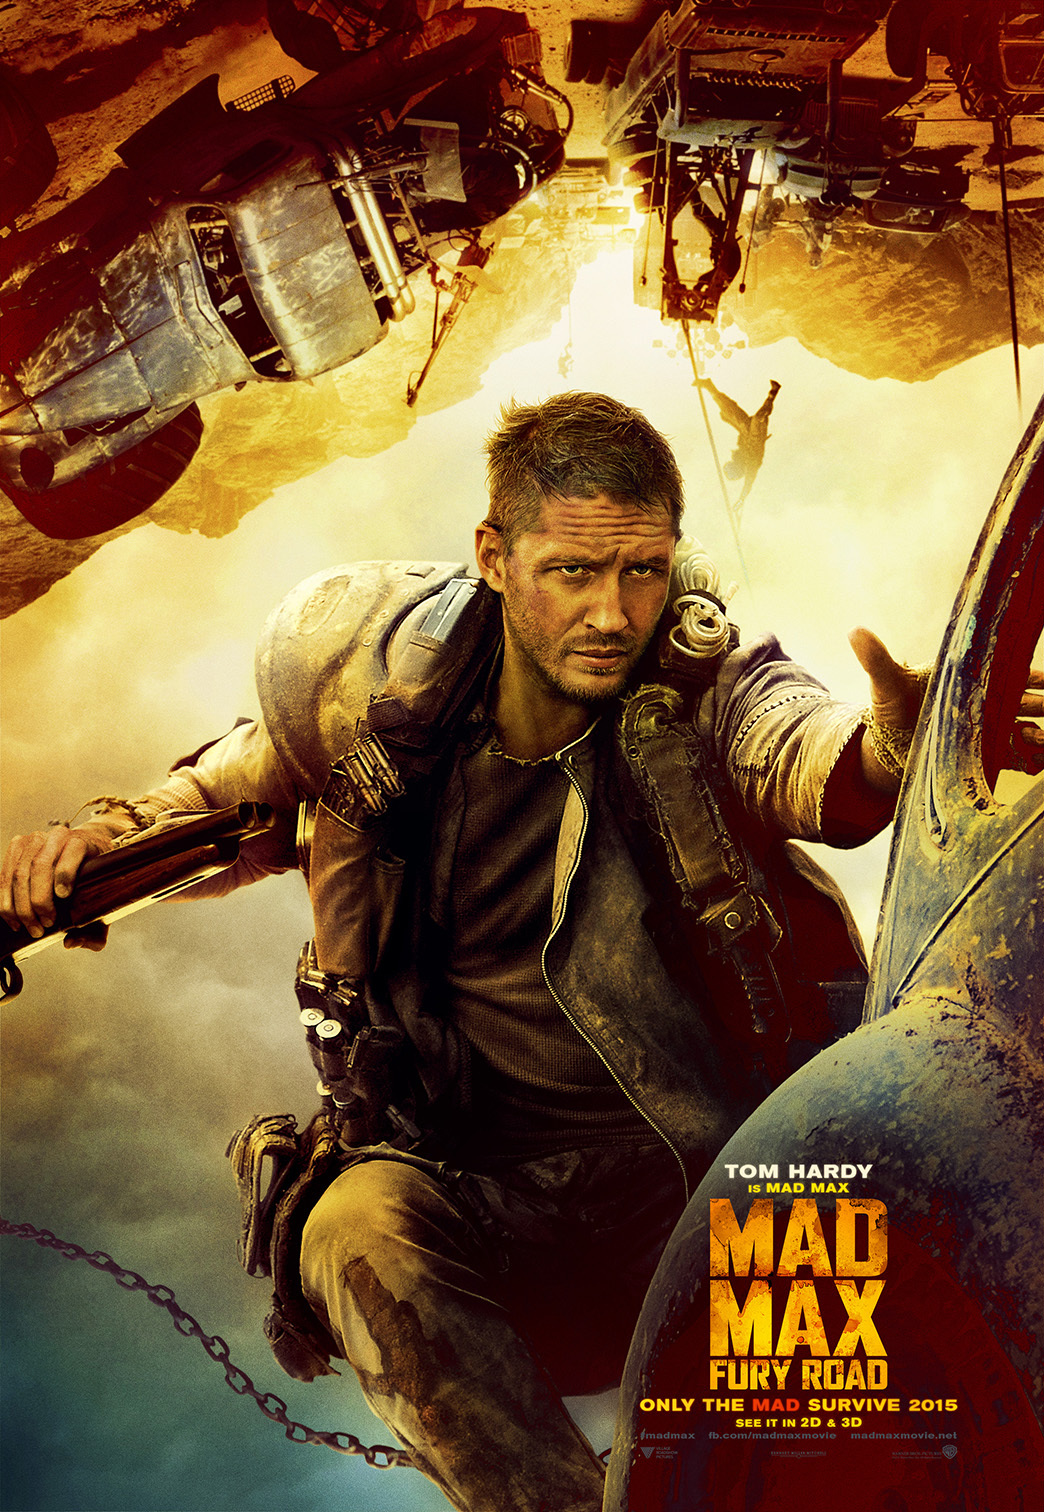 Polster Max Madmax Poster Wallpaper Download Chip